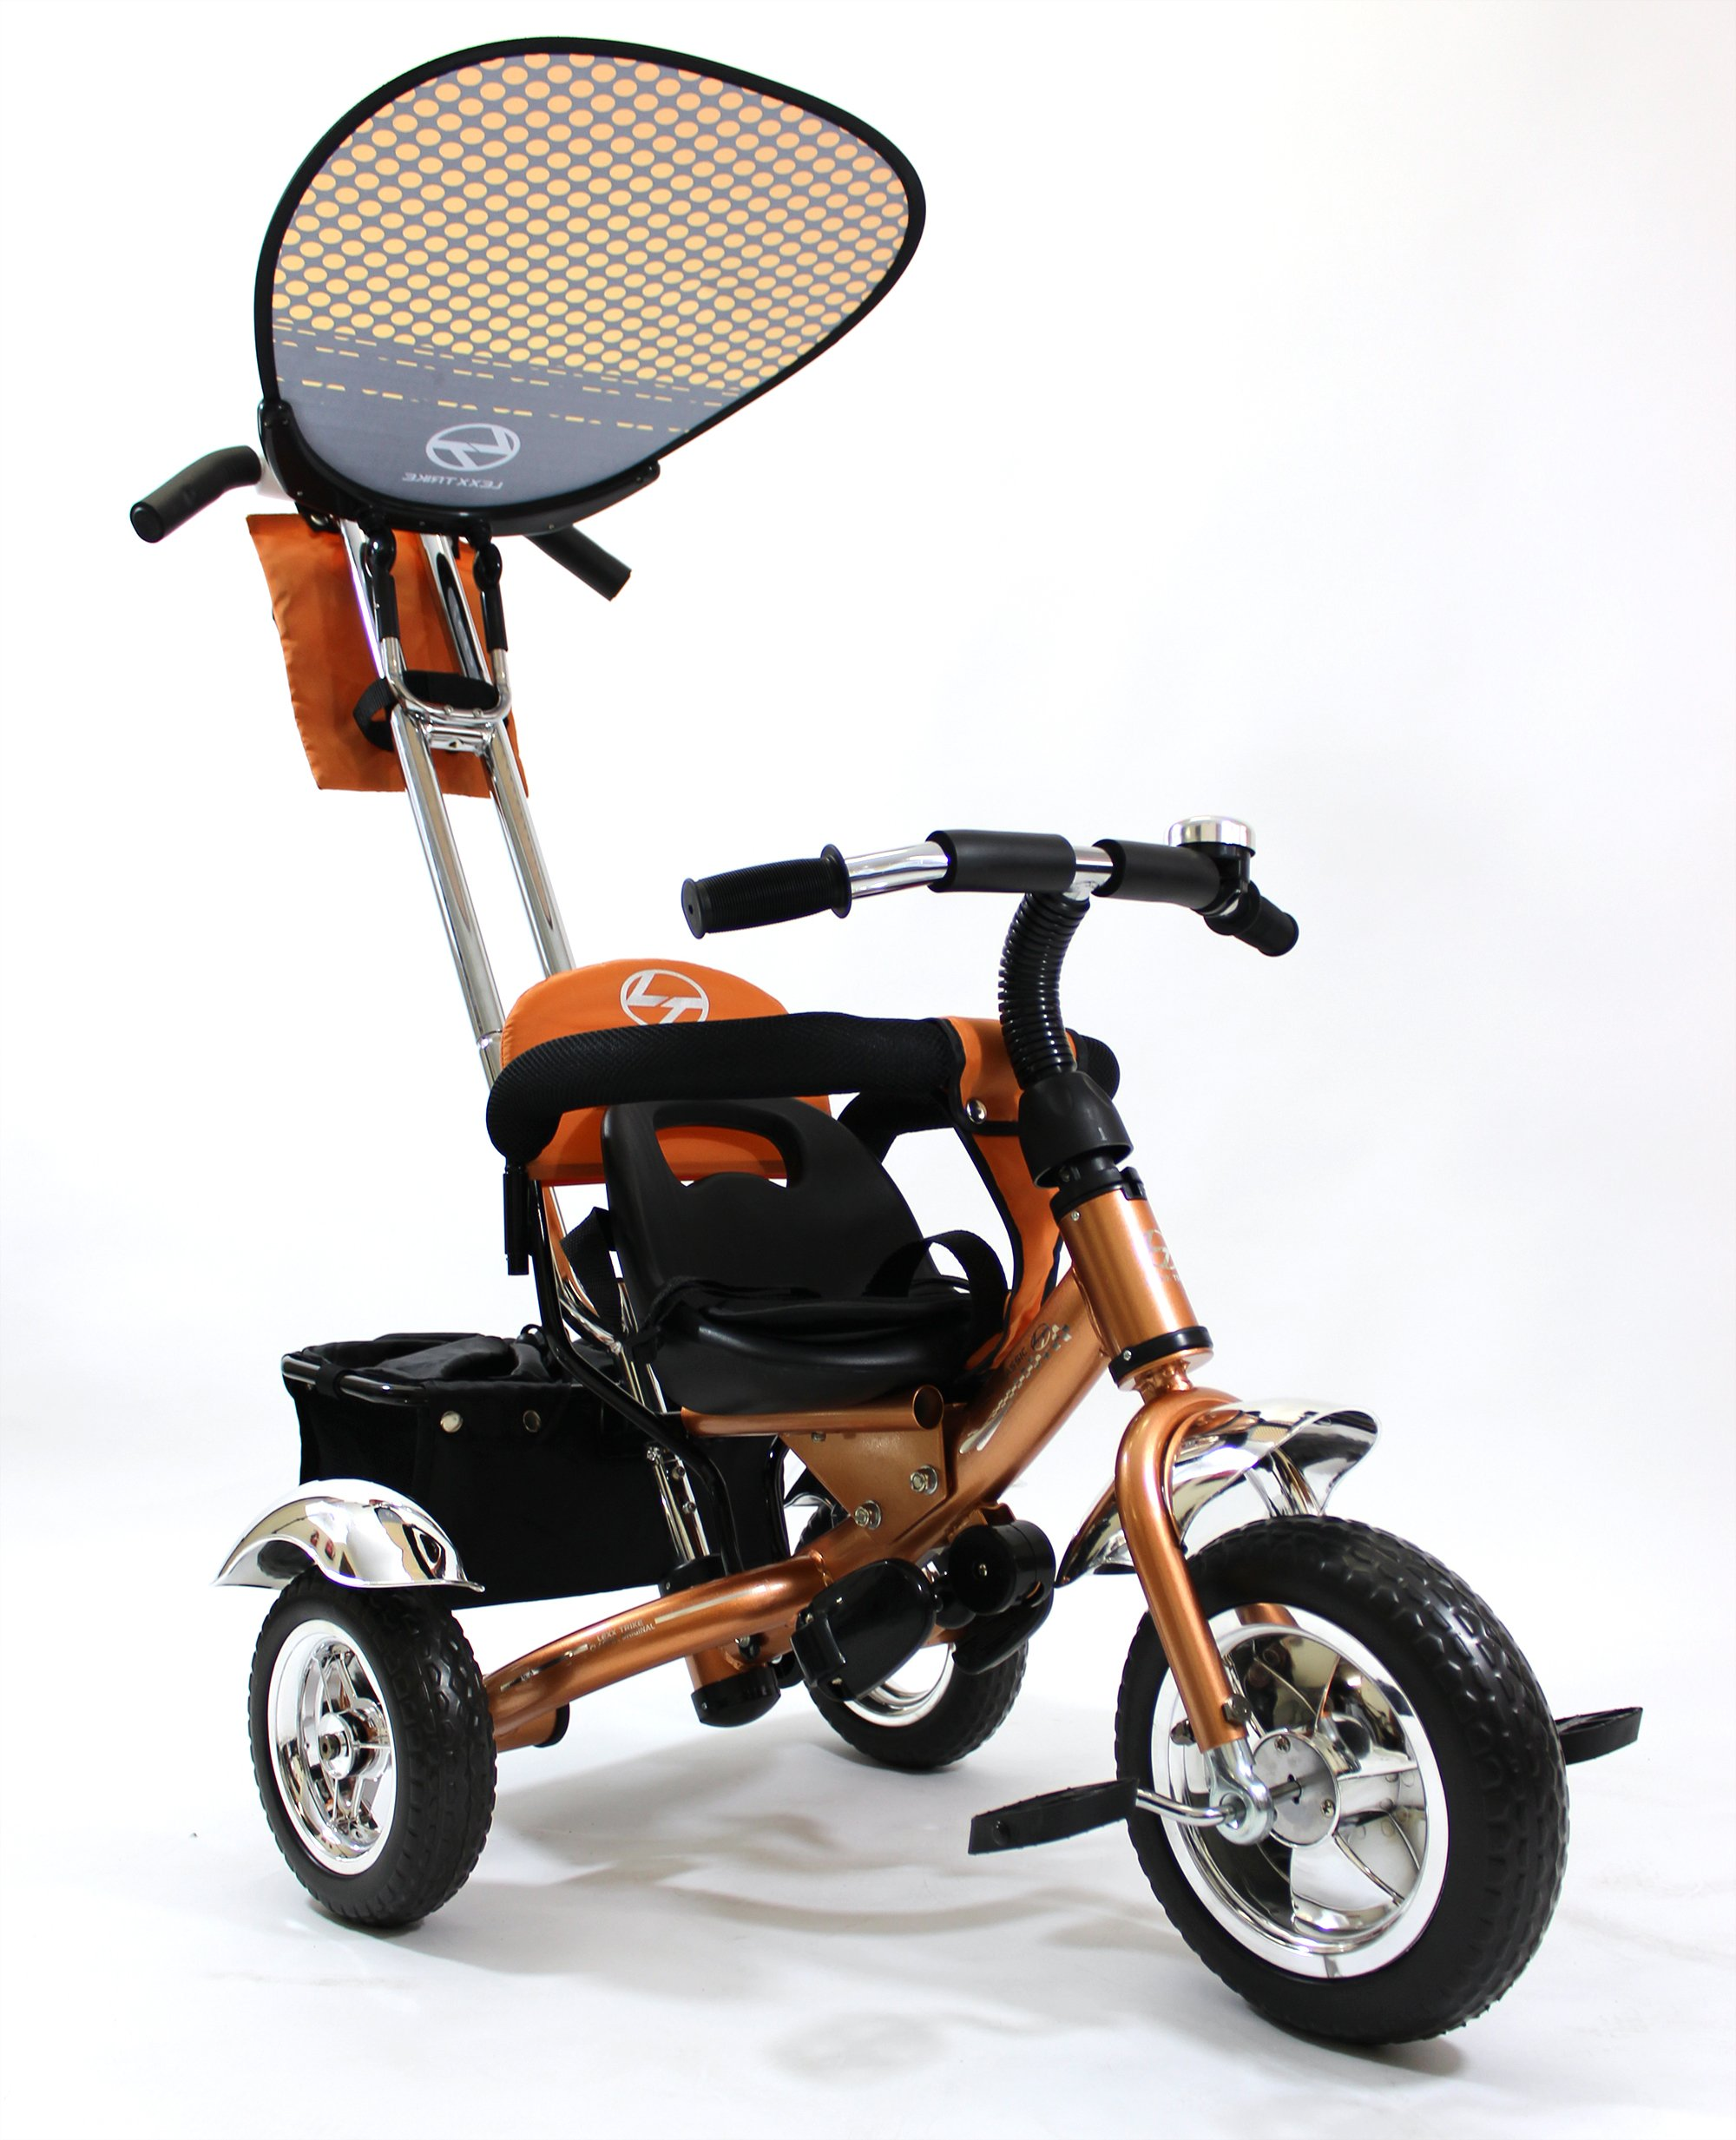 4in1 Lexx Trike Classic Smart Kid's Tricycle 3 Wheel Bike Removable Handle & Canopy NEW GOLD by Lexx Trike